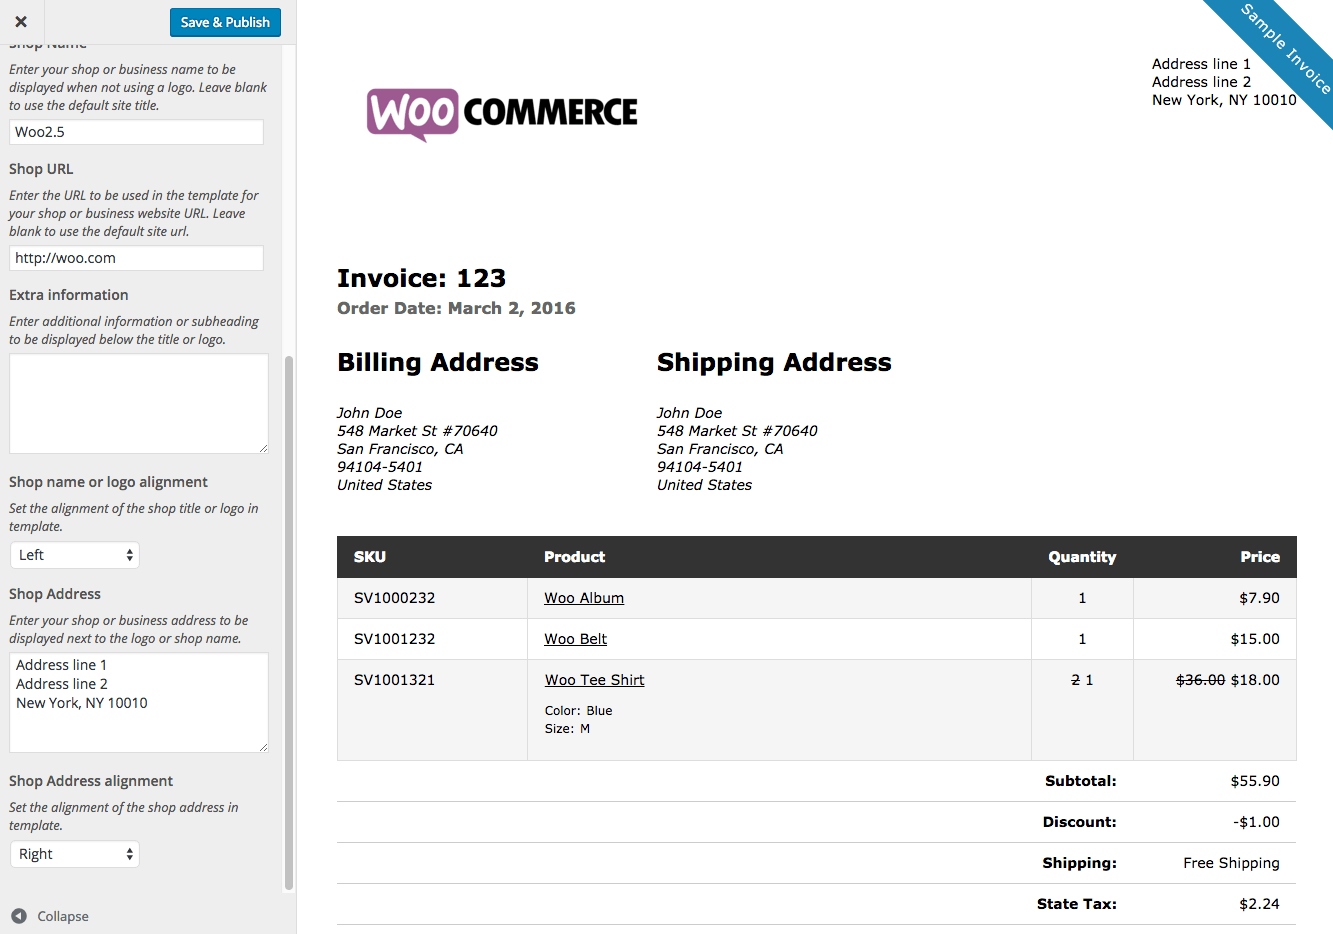 Hucareus  Winning Woocommerce Print Invoices Amp Packing Lists  Woocommerce Docs With Excellent Woocommerce Print Invoices  Packing Lists Customizer With Enchanting Rent Payment Receipt Template Word Also Receipt Of Sale Form In Addition Free Blank Receipt And Epson Receipt Paper As Well As Landlord Rent Receipt Template Additionally Chocolate Chip Cookie Receipt From Docswoocommercecom With Hucareus  Excellent Woocommerce Print Invoices Amp Packing Lists  Woocommerce Docs With Enchanting Woocommerce Print Invoices  Packing Lists Customizer And Winning Rent Payment Receipt Template Word Also Receipt Of Sale Form In Addition Free Blank Receipt From Docswoocommercecom